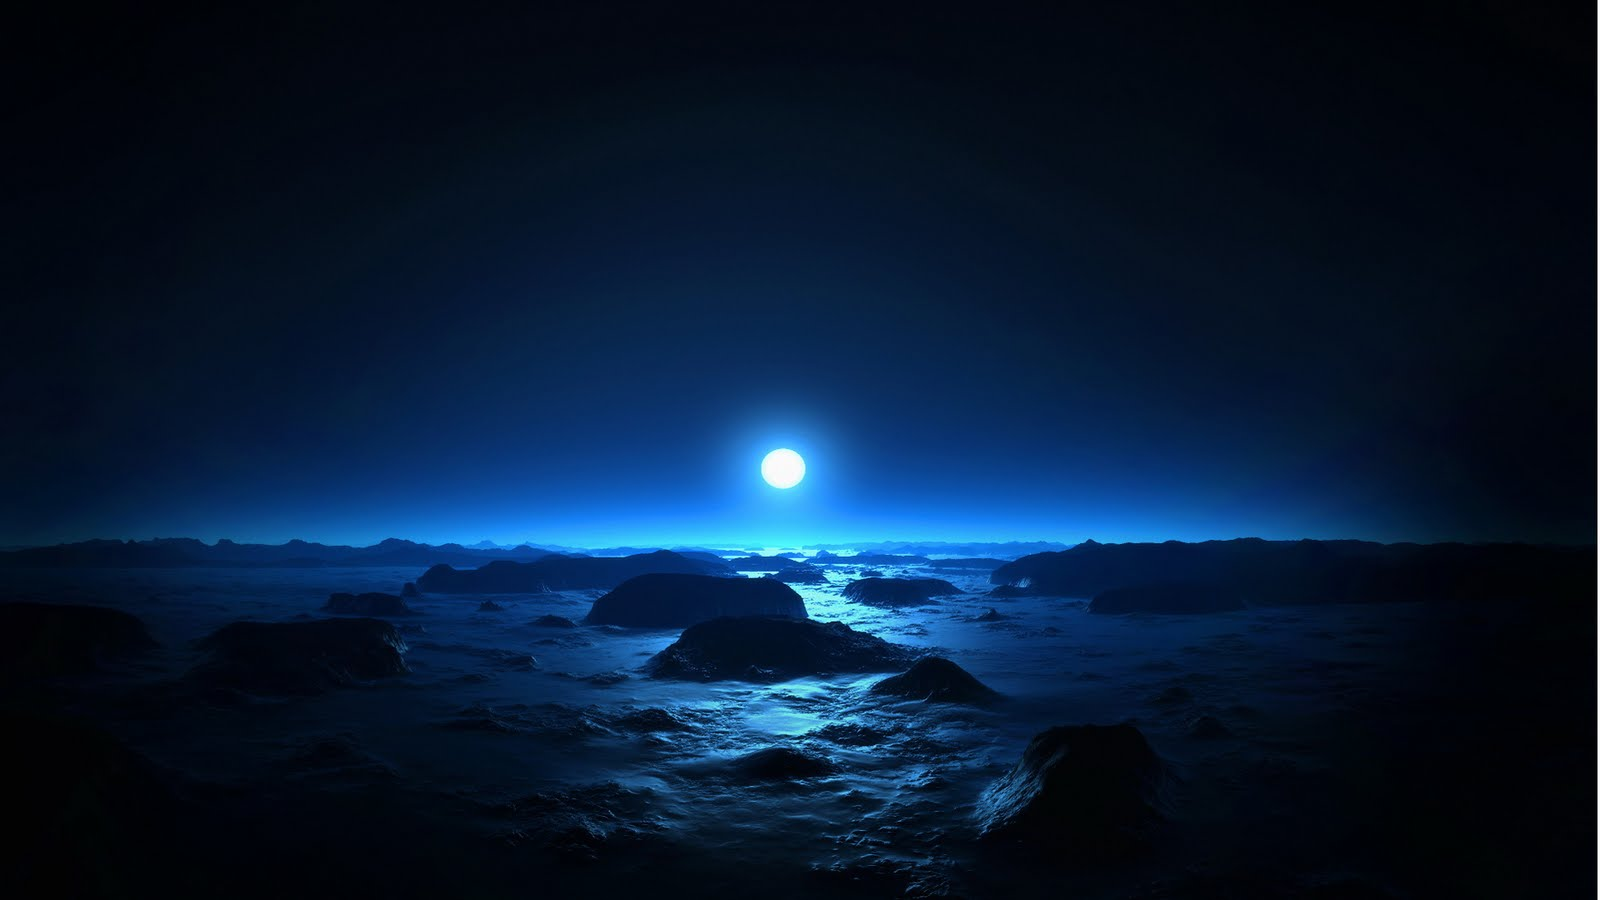 WALLPAPERS: 1080p